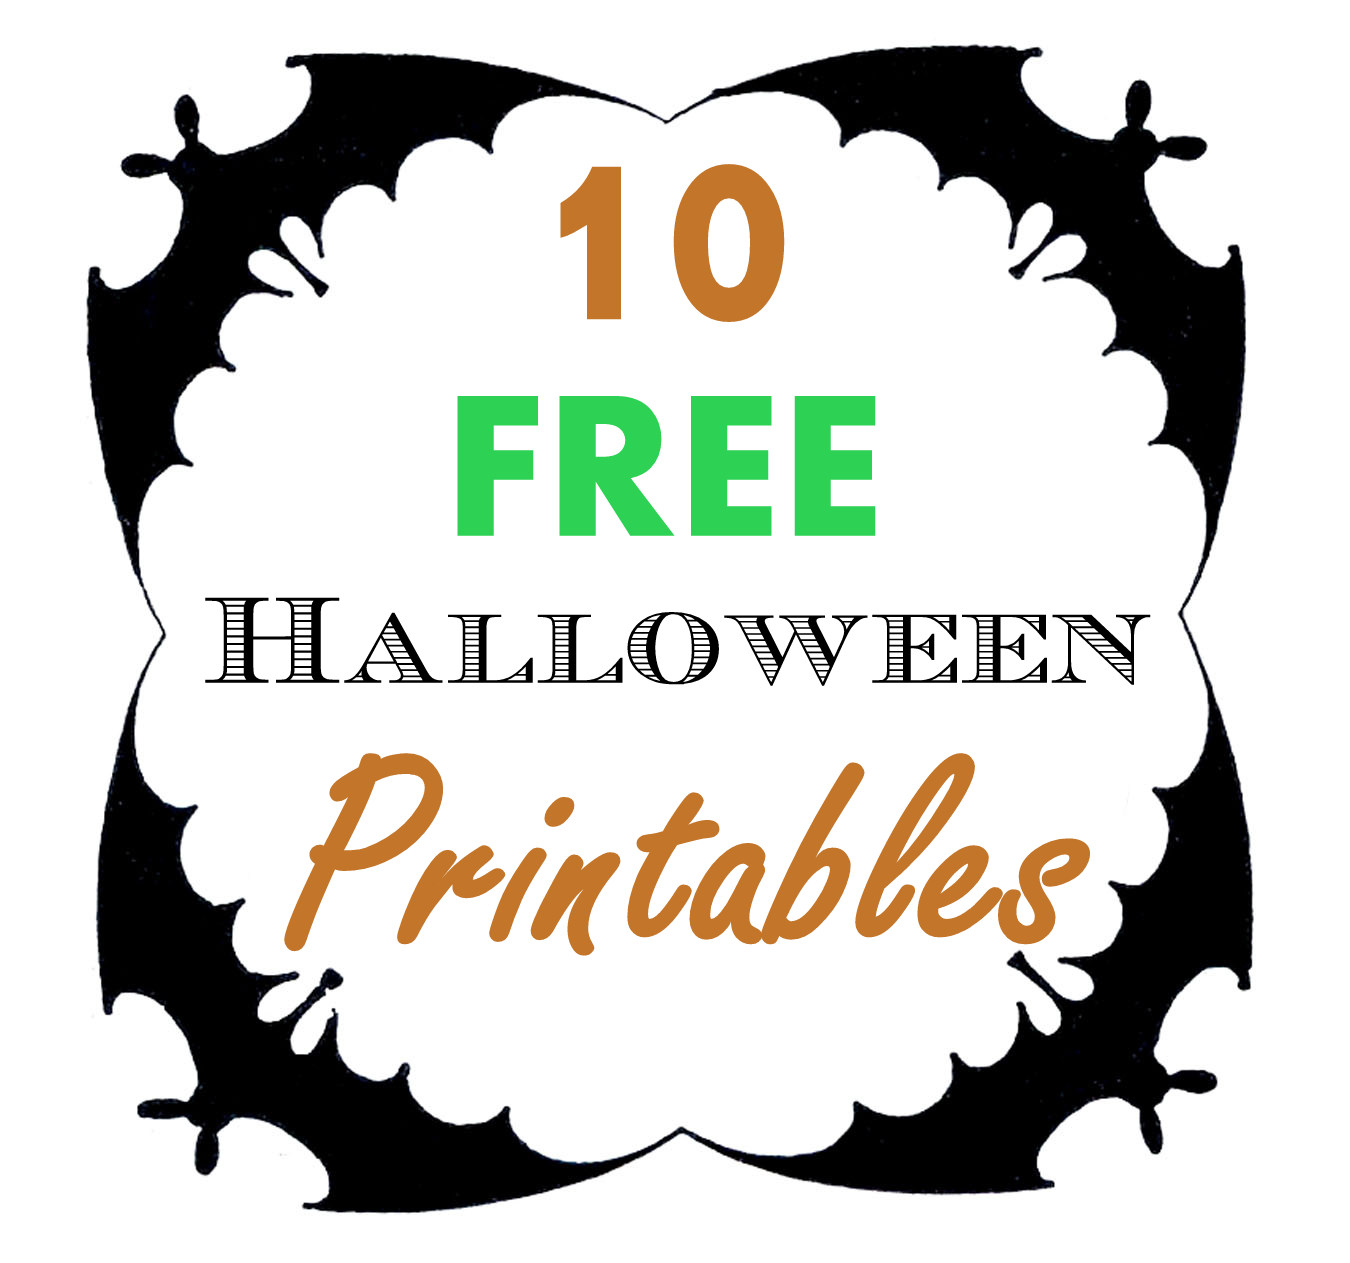 This is a graphic of Transformative Free Halloween Printable